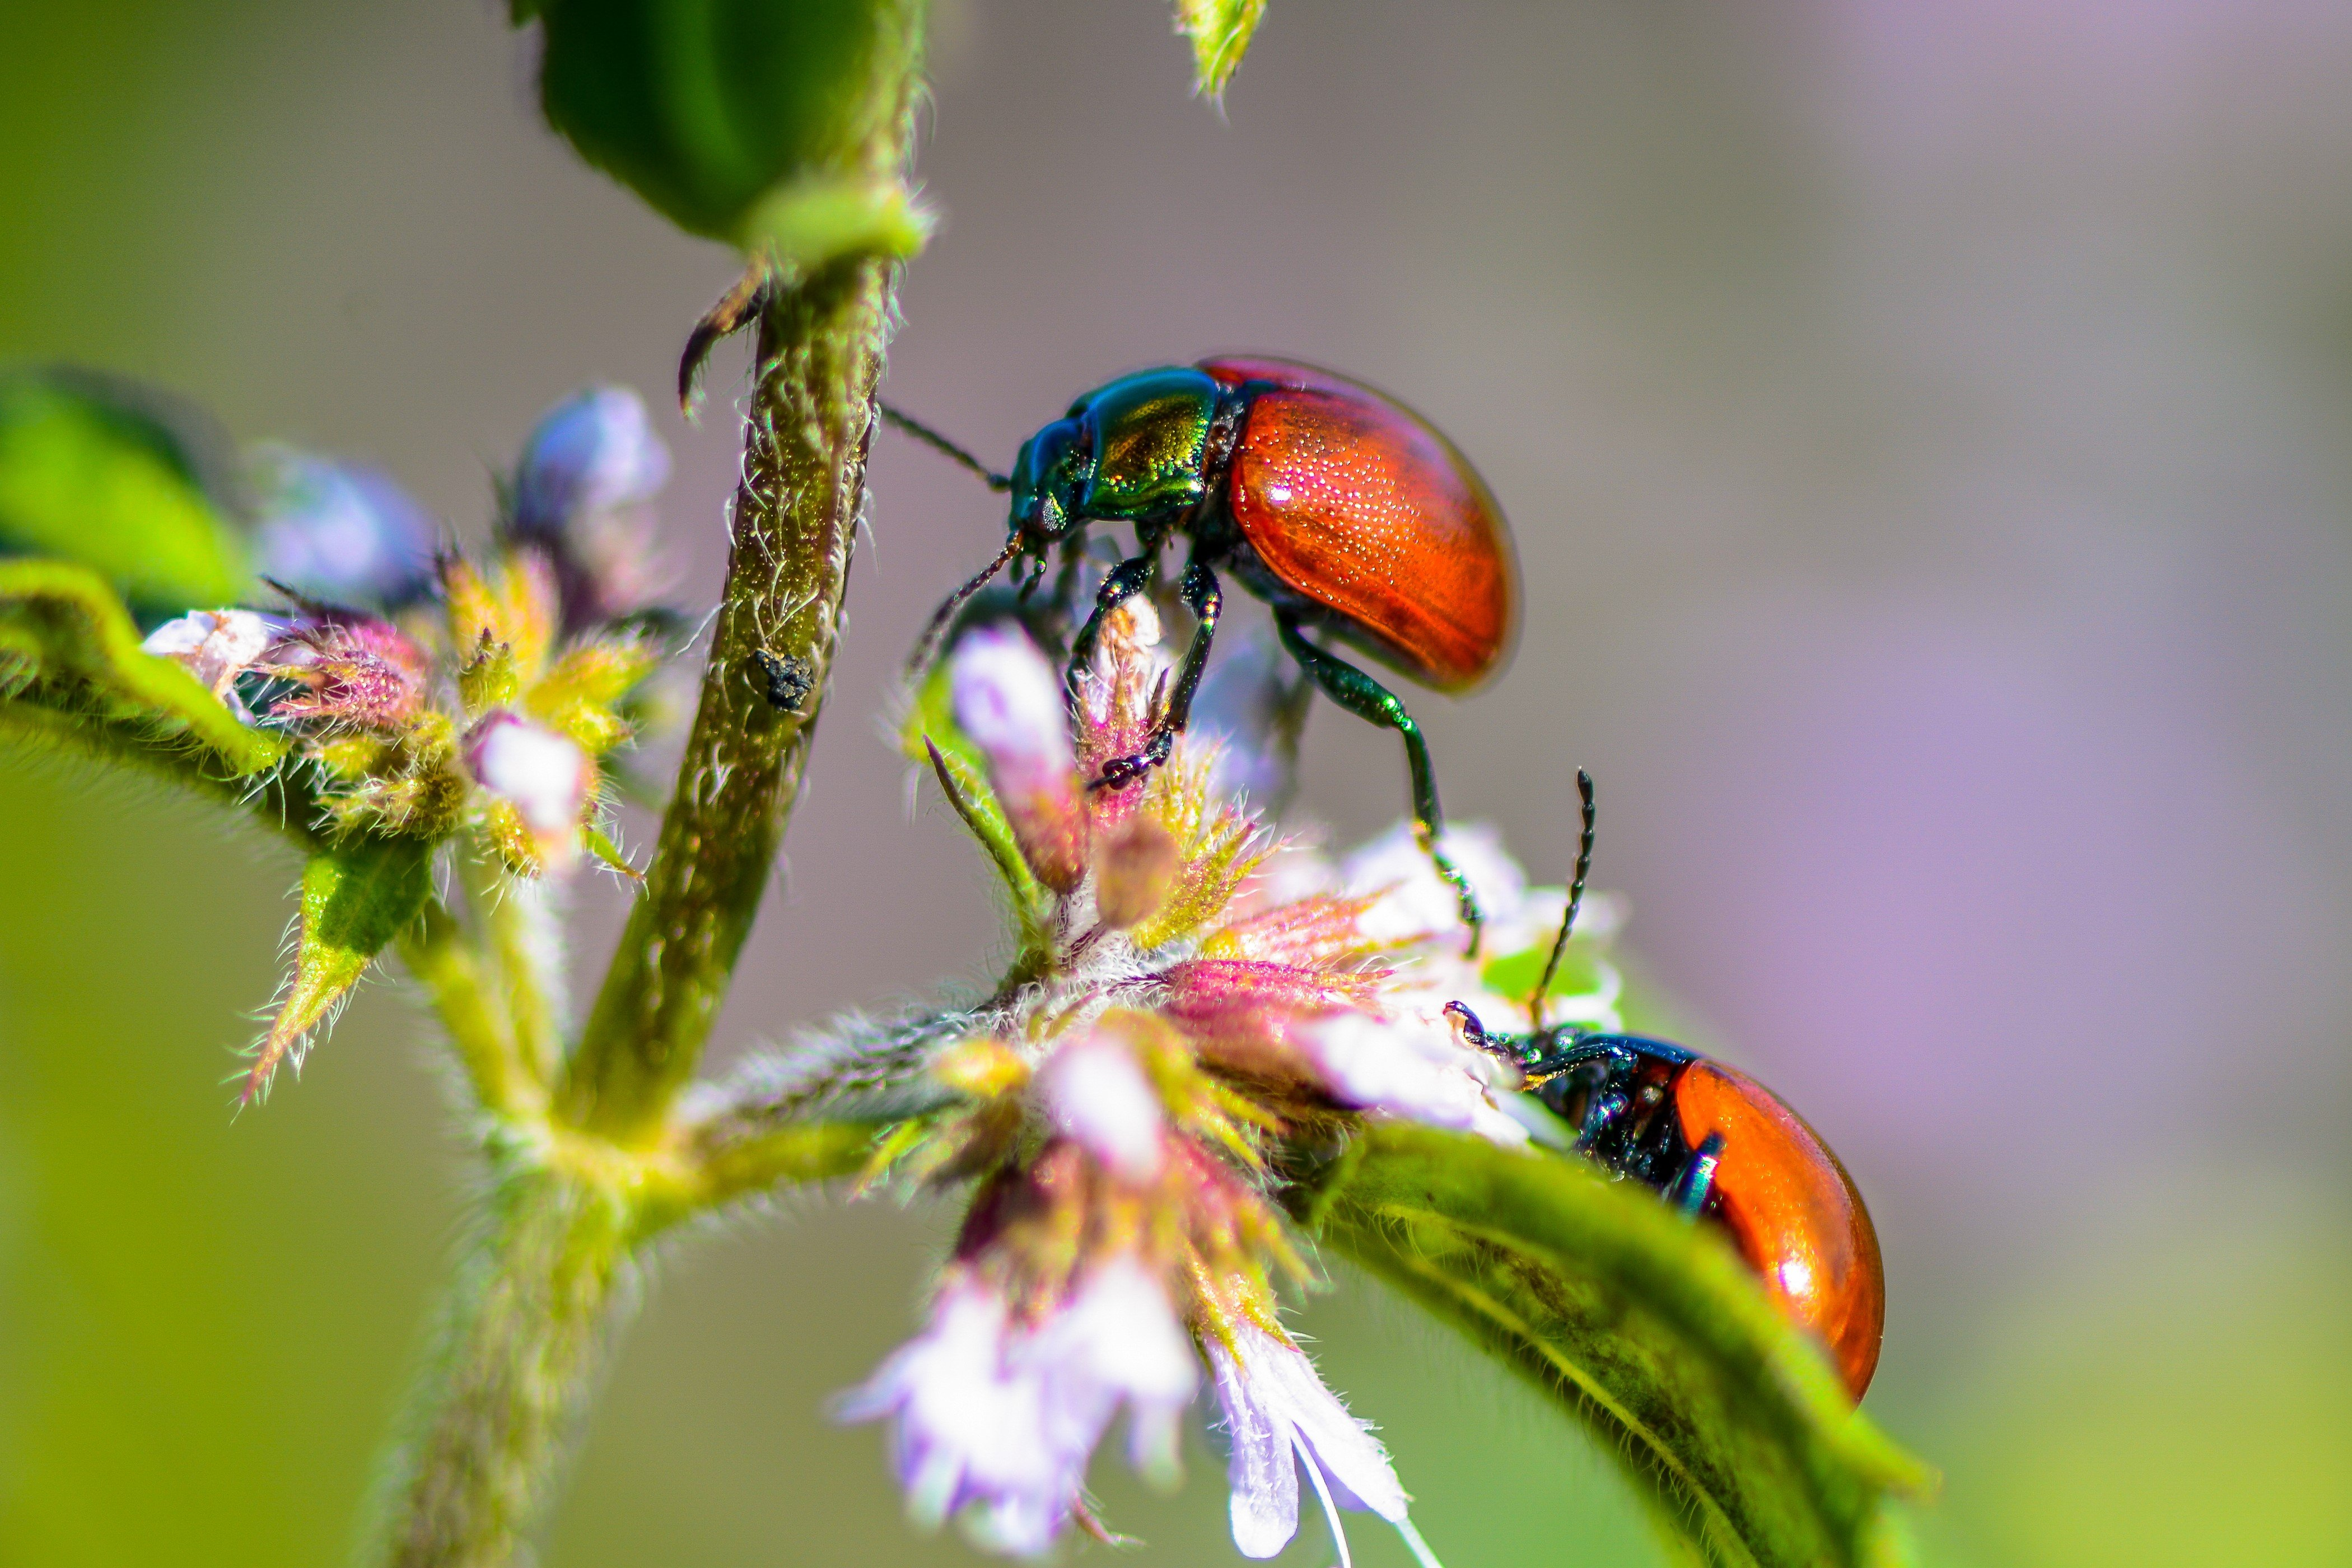 ladybugs, insects, macro, nature, colorful, flowers, Marius Surleac